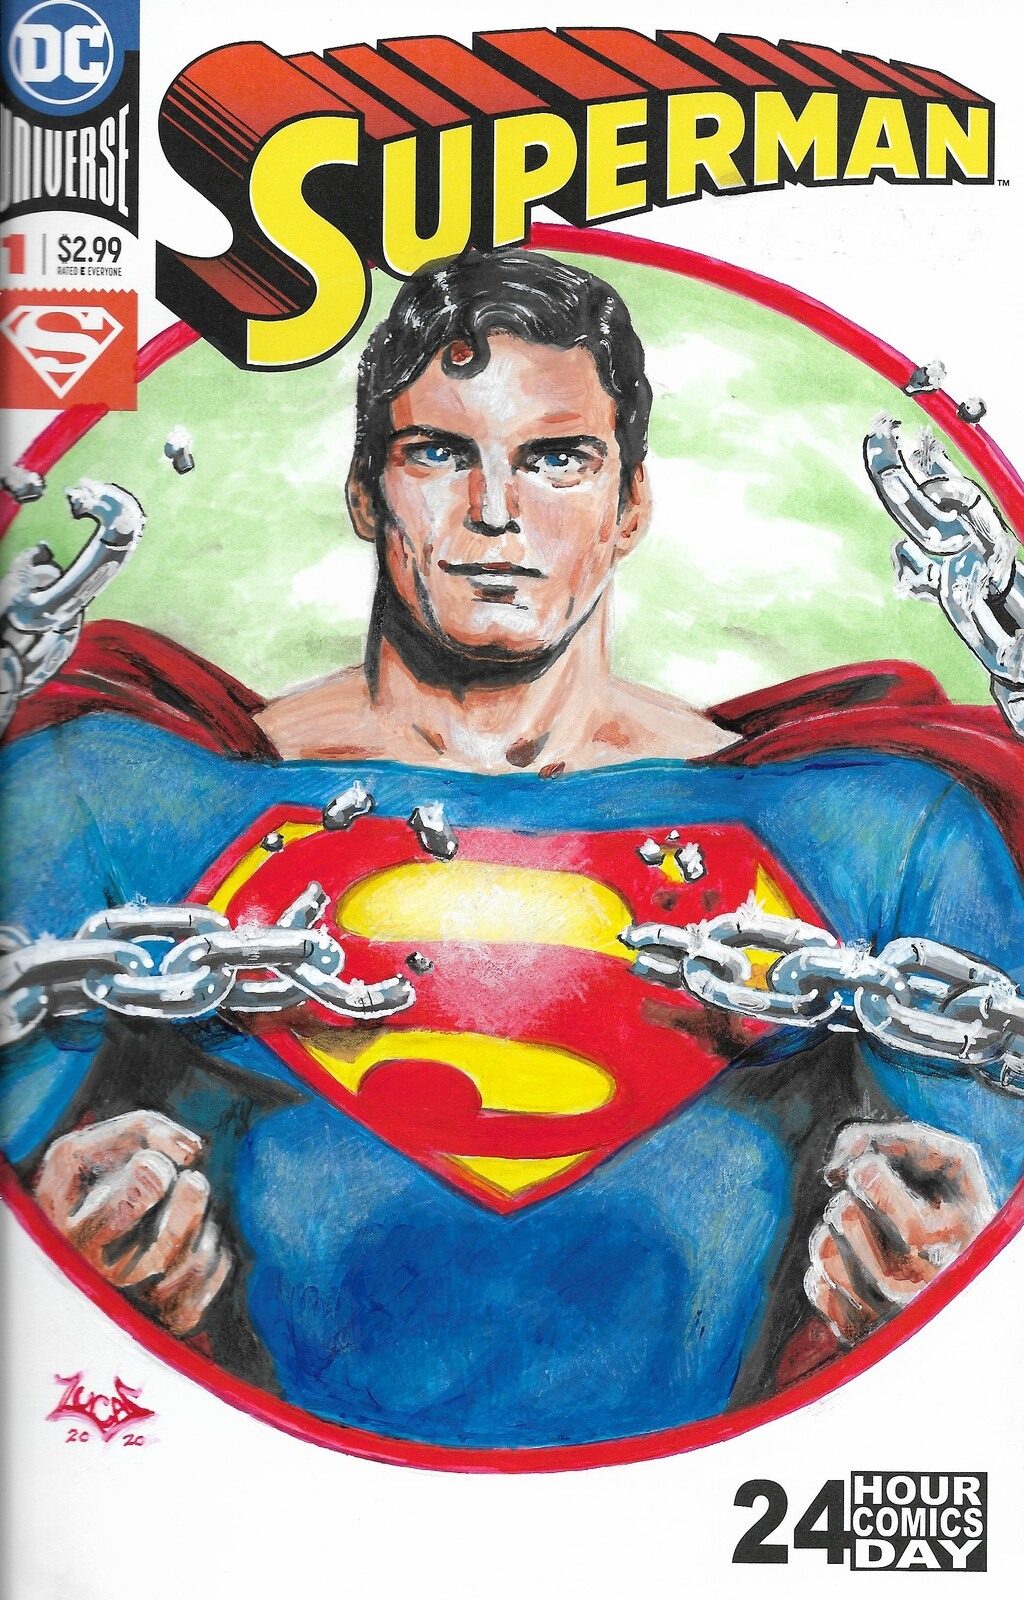 Reeves Superman Sketch Cover